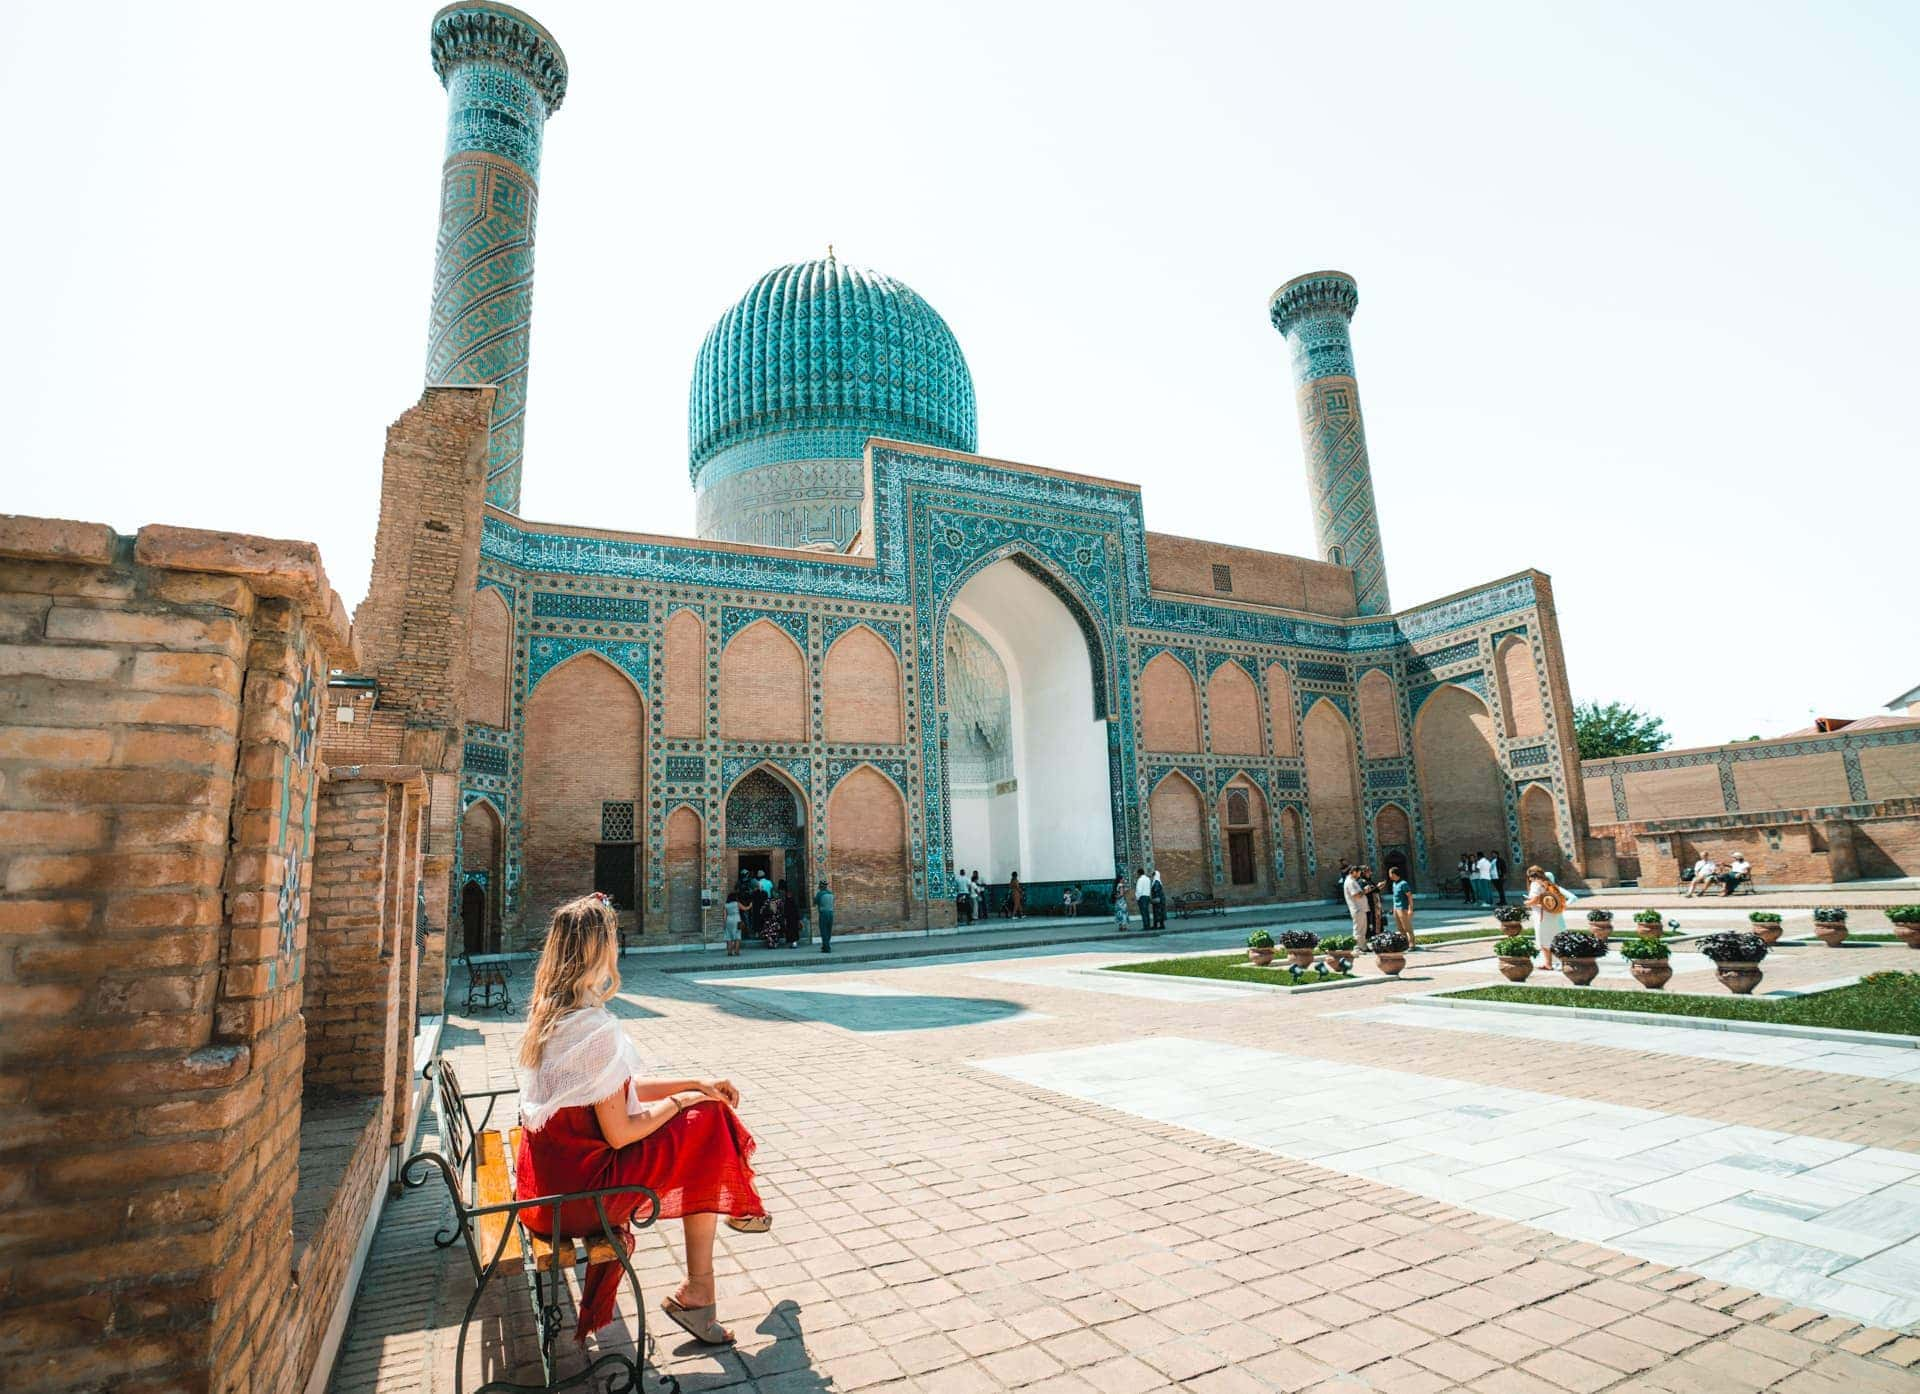 uzbekistan travel guide what to wear